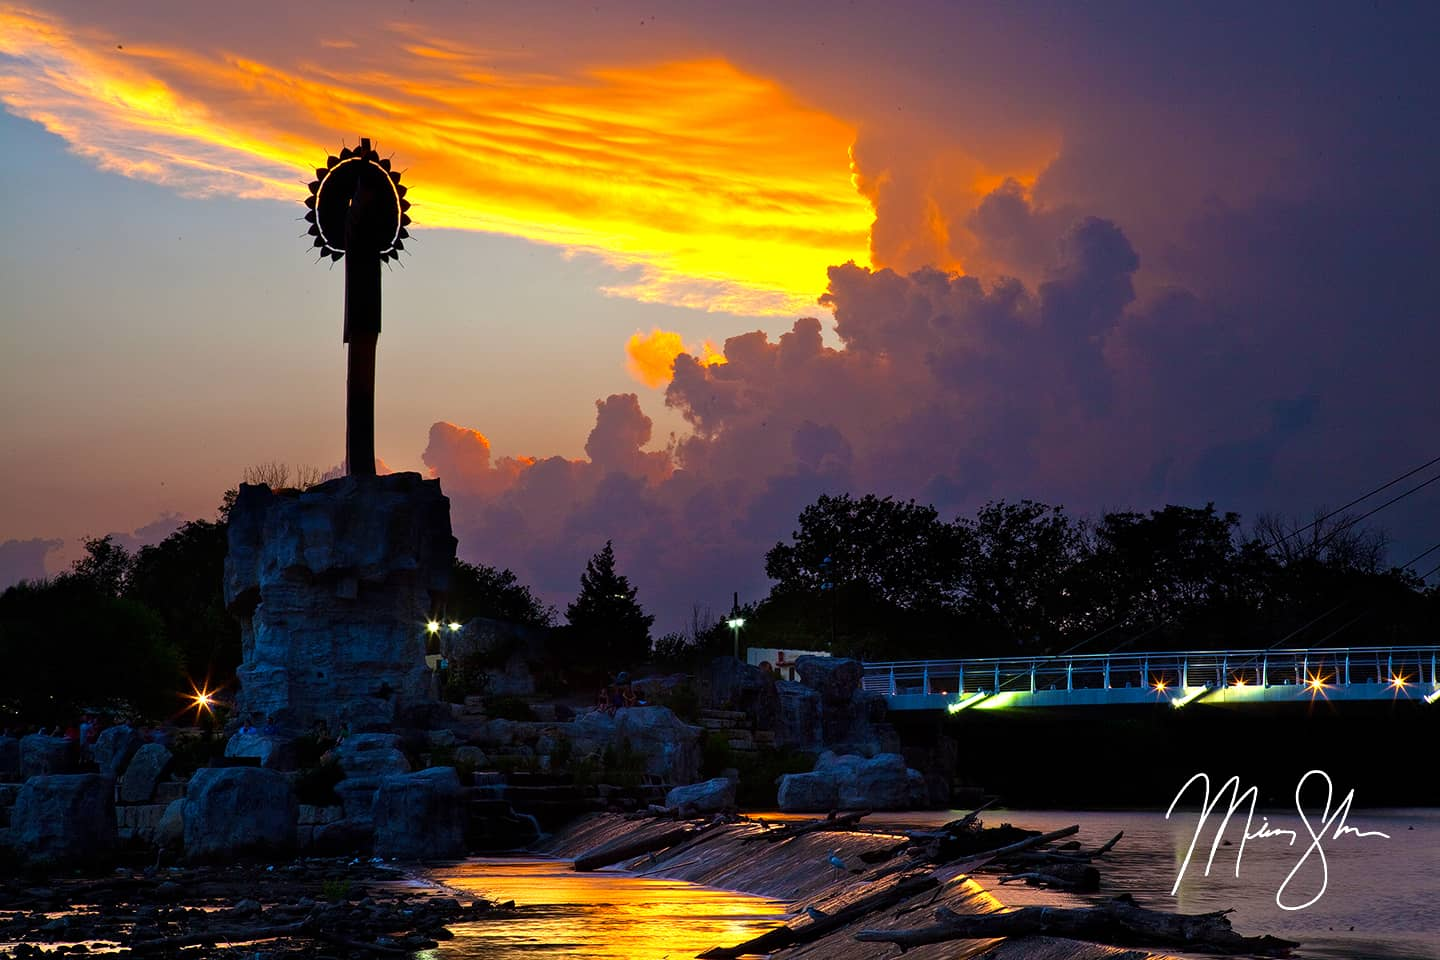 Open edition fine art print of Stormy Wichita Sunset from Mickey Shannon Photography. Location: Wichita, Kansas